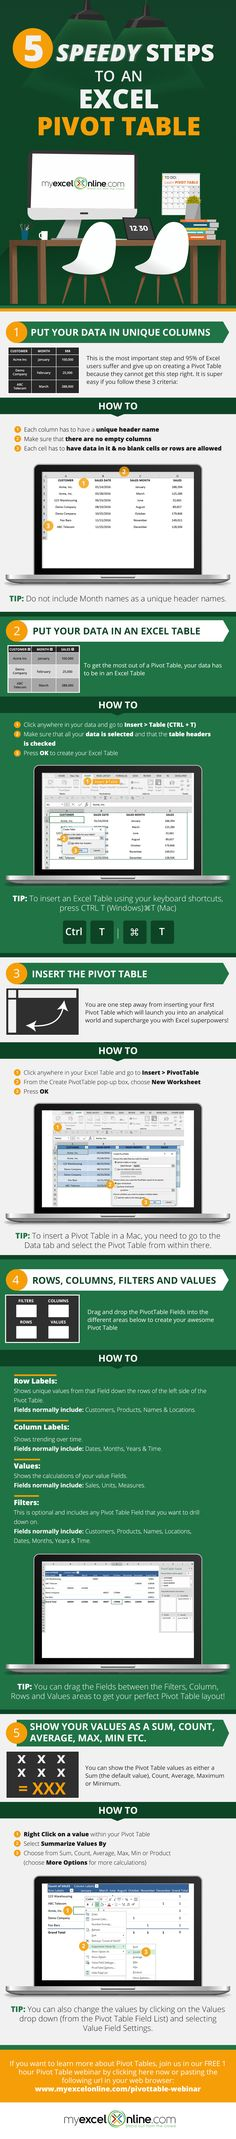 Learn more about Pivot Tables with our free webinar. Opt-in required. Ideal for Accountants, Financial Controllers, Administrators, Finance Analysts, and Bookkeepers. | Excel Pivot Table Tips